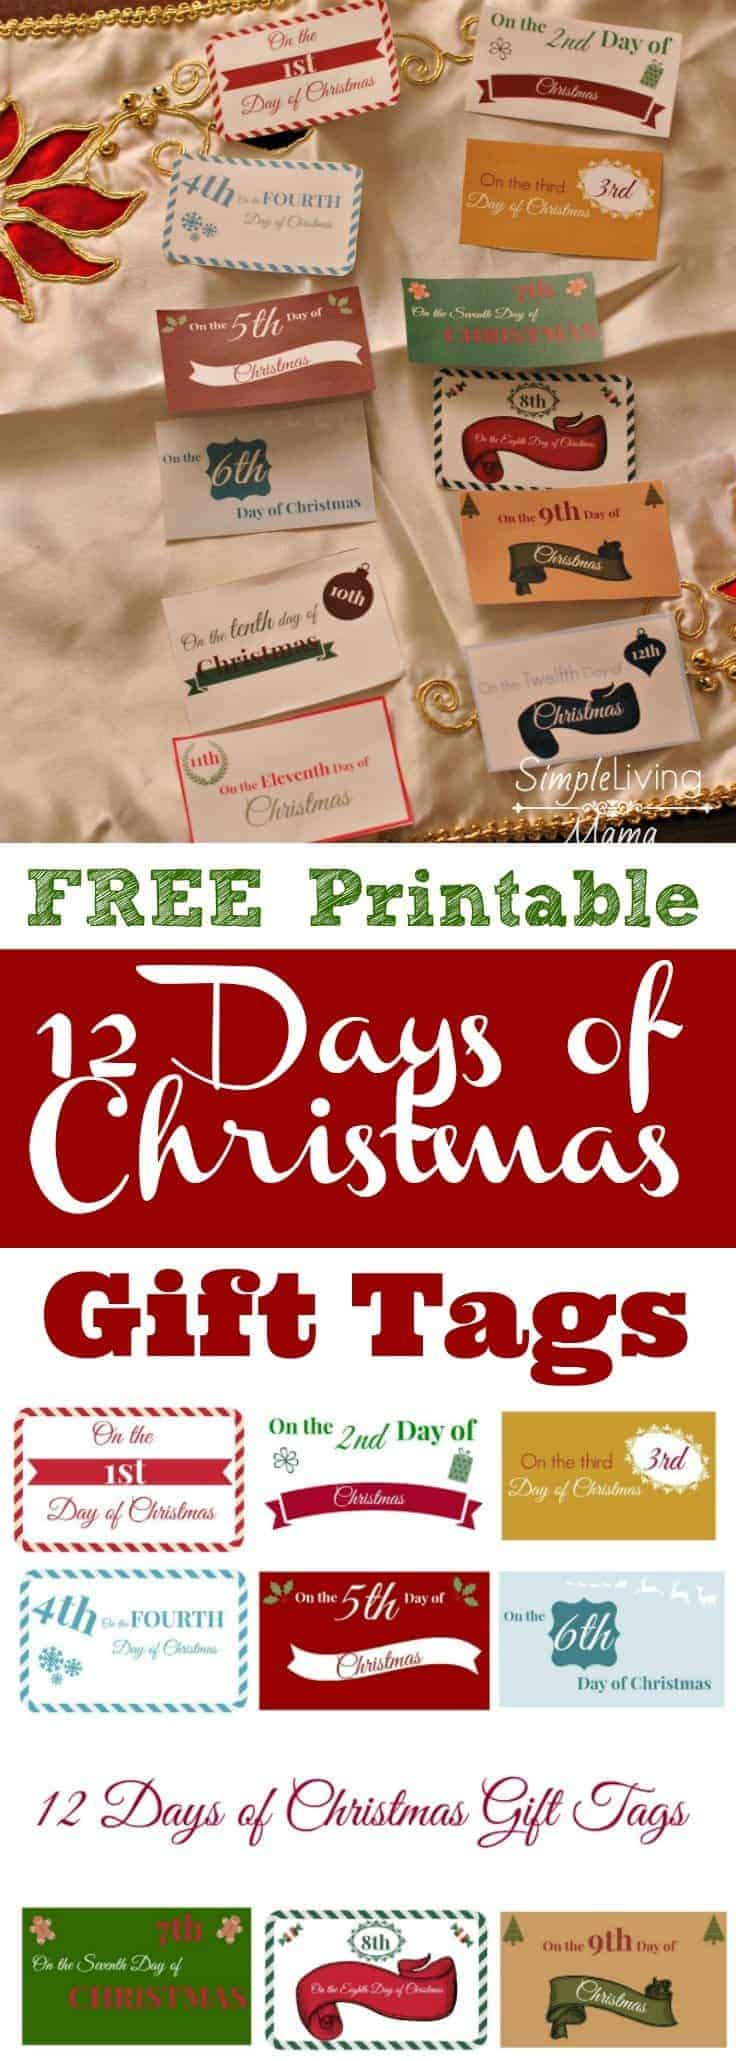 image regarding 12 Days of Christmas Printable Tags identify The 12 Times of Xmas Strategies + Printable Present Tags